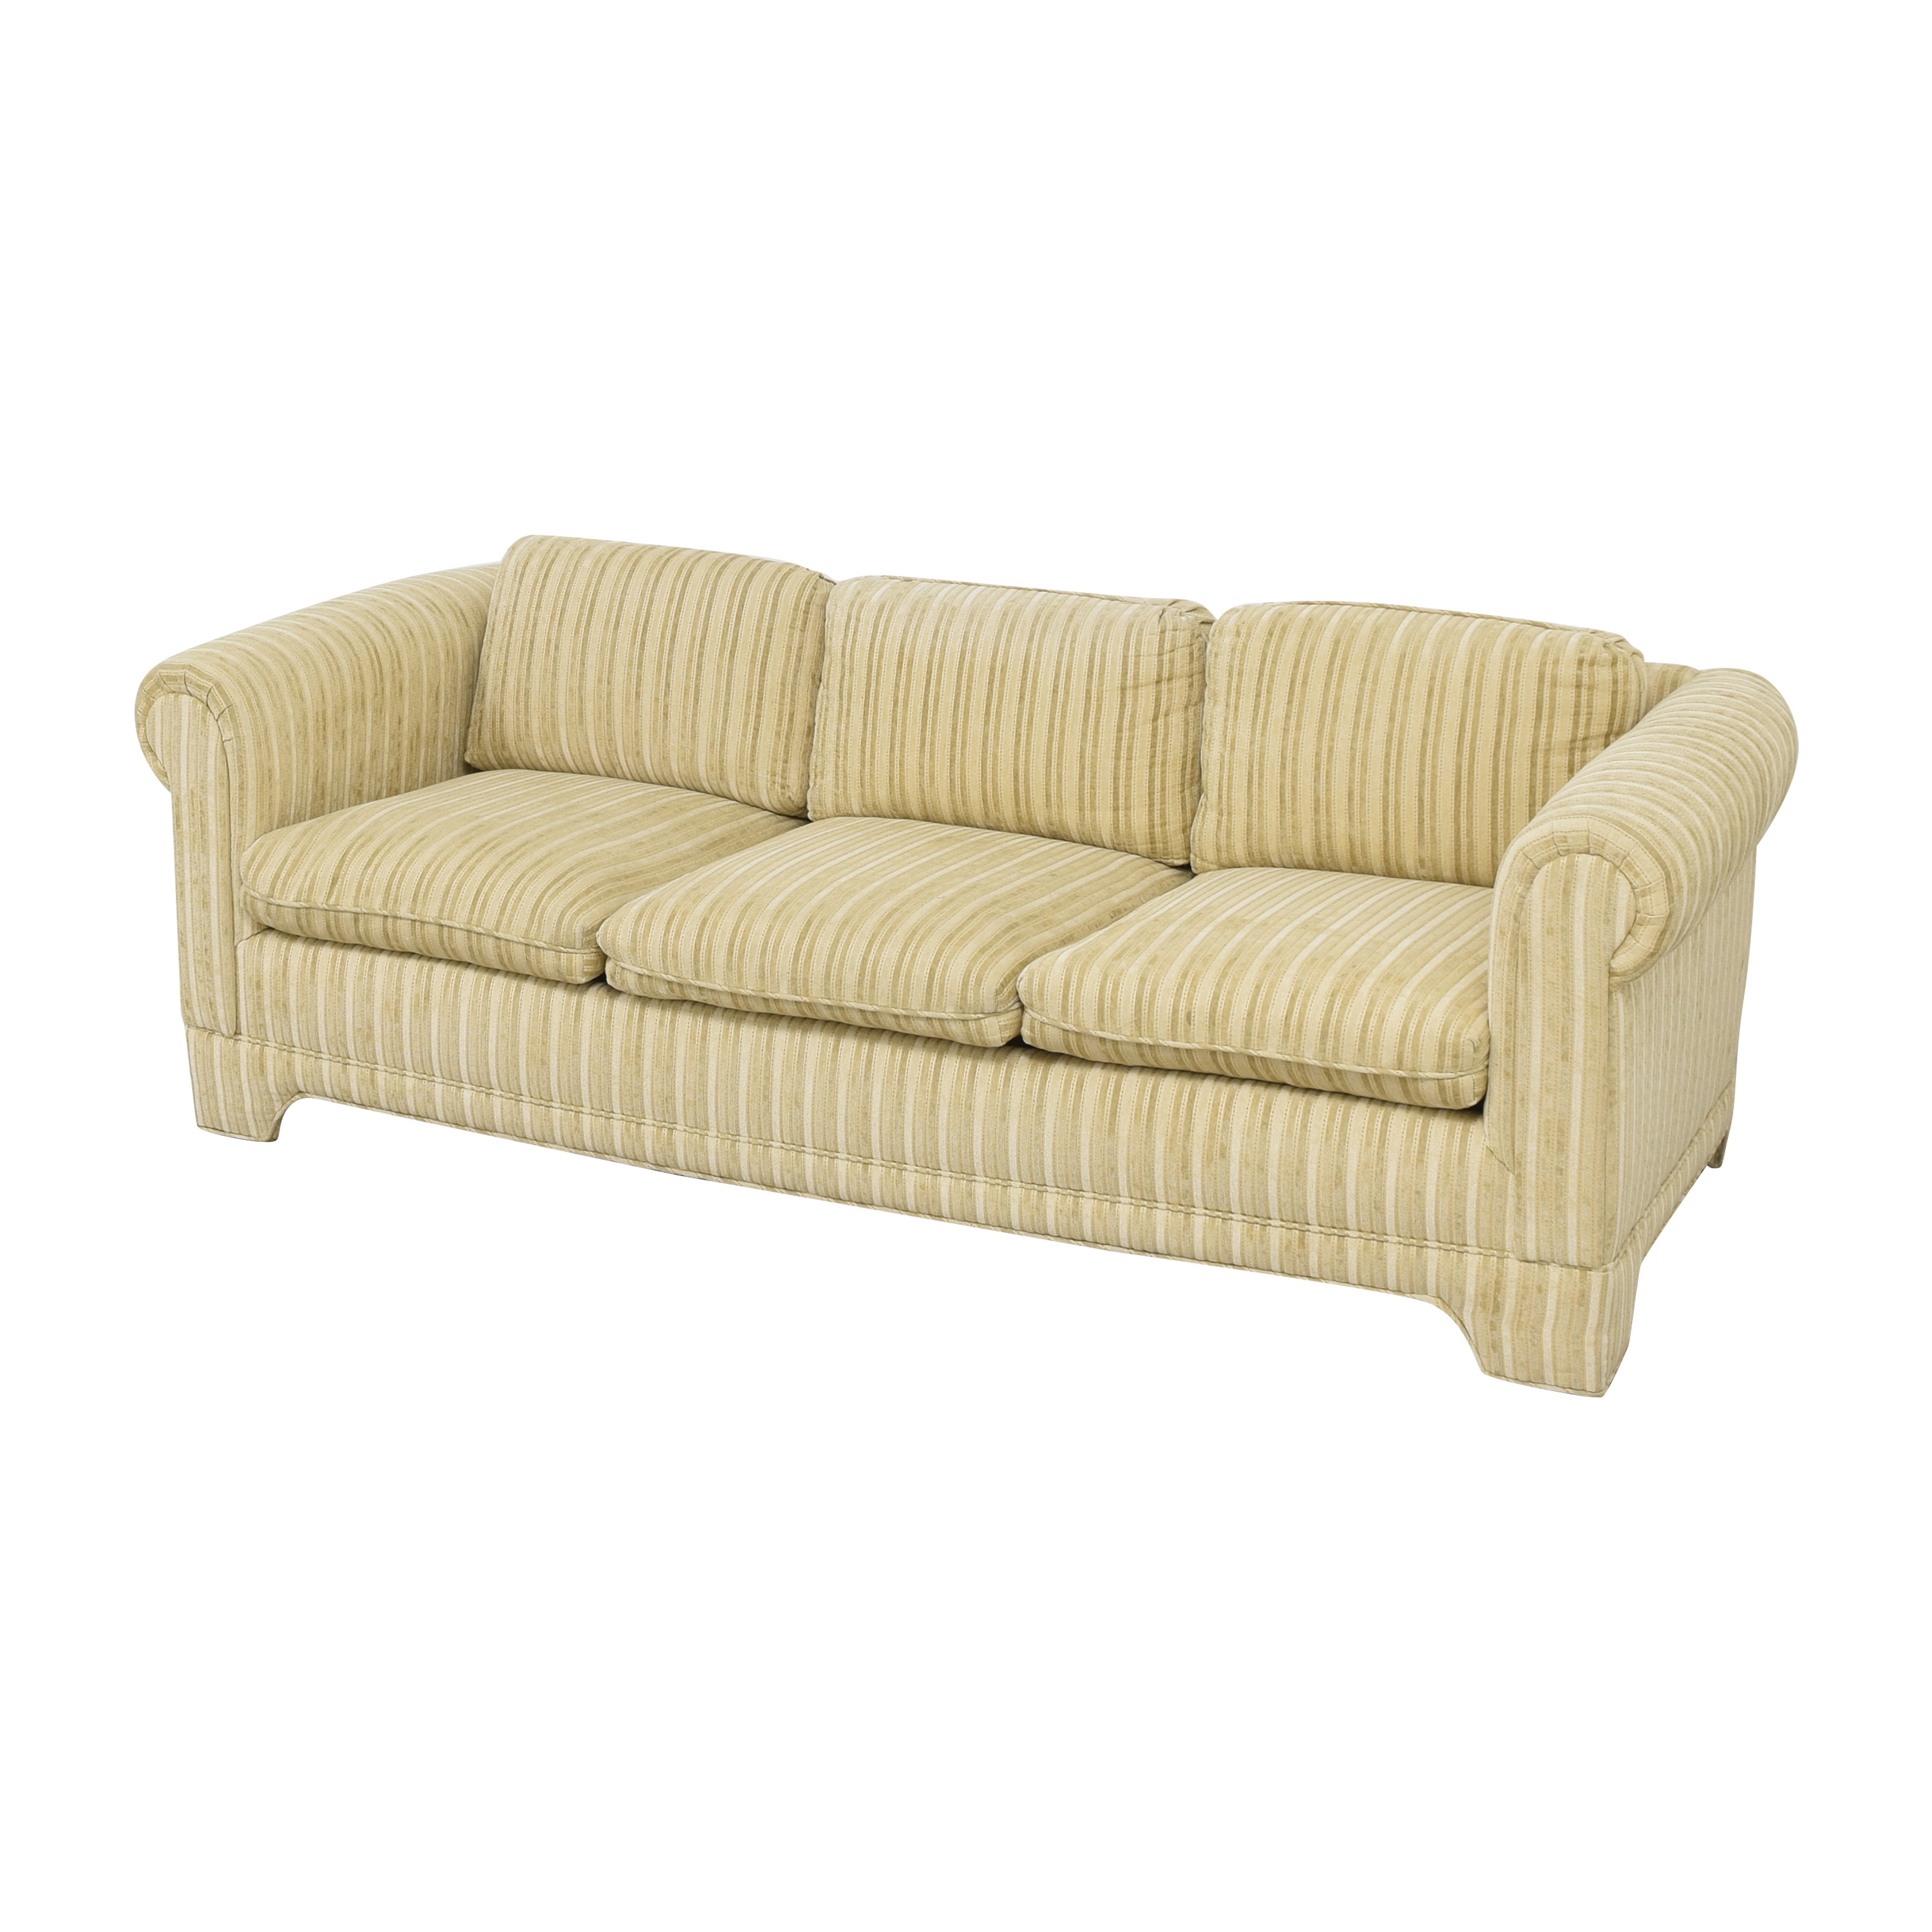 Cameo Collection Cameo Collection Stripe Sofa discount